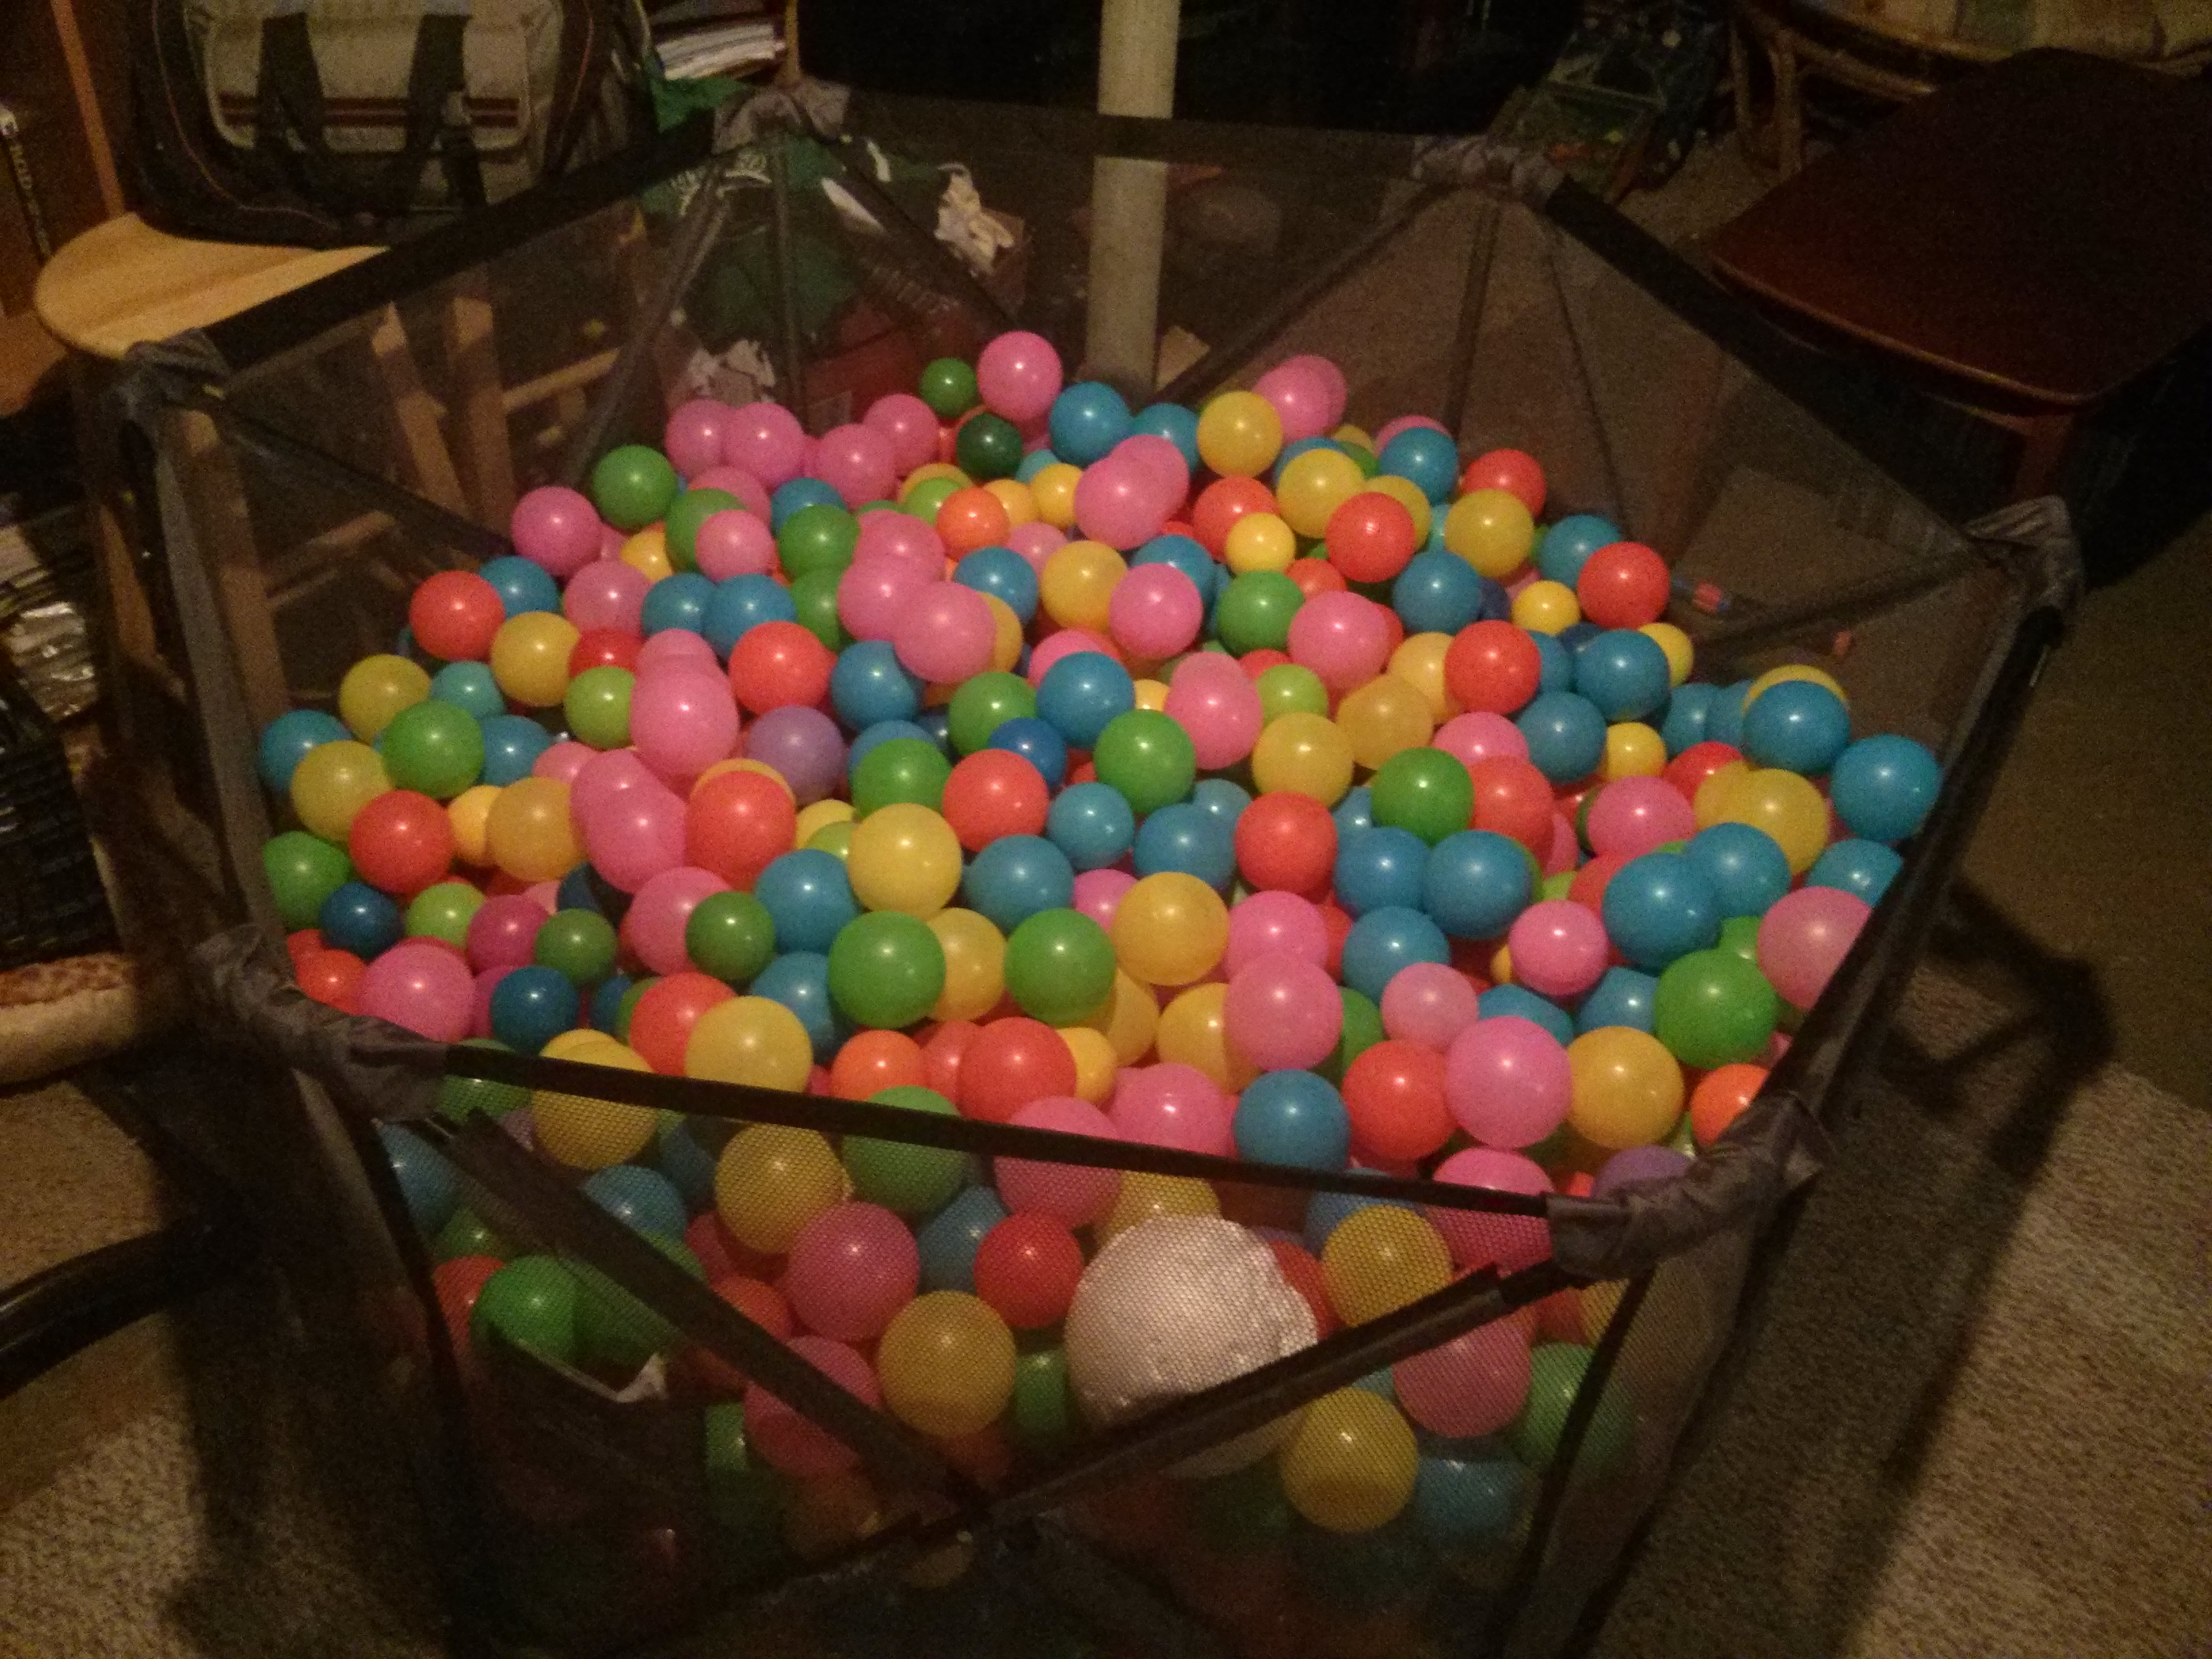 New Ball Pit